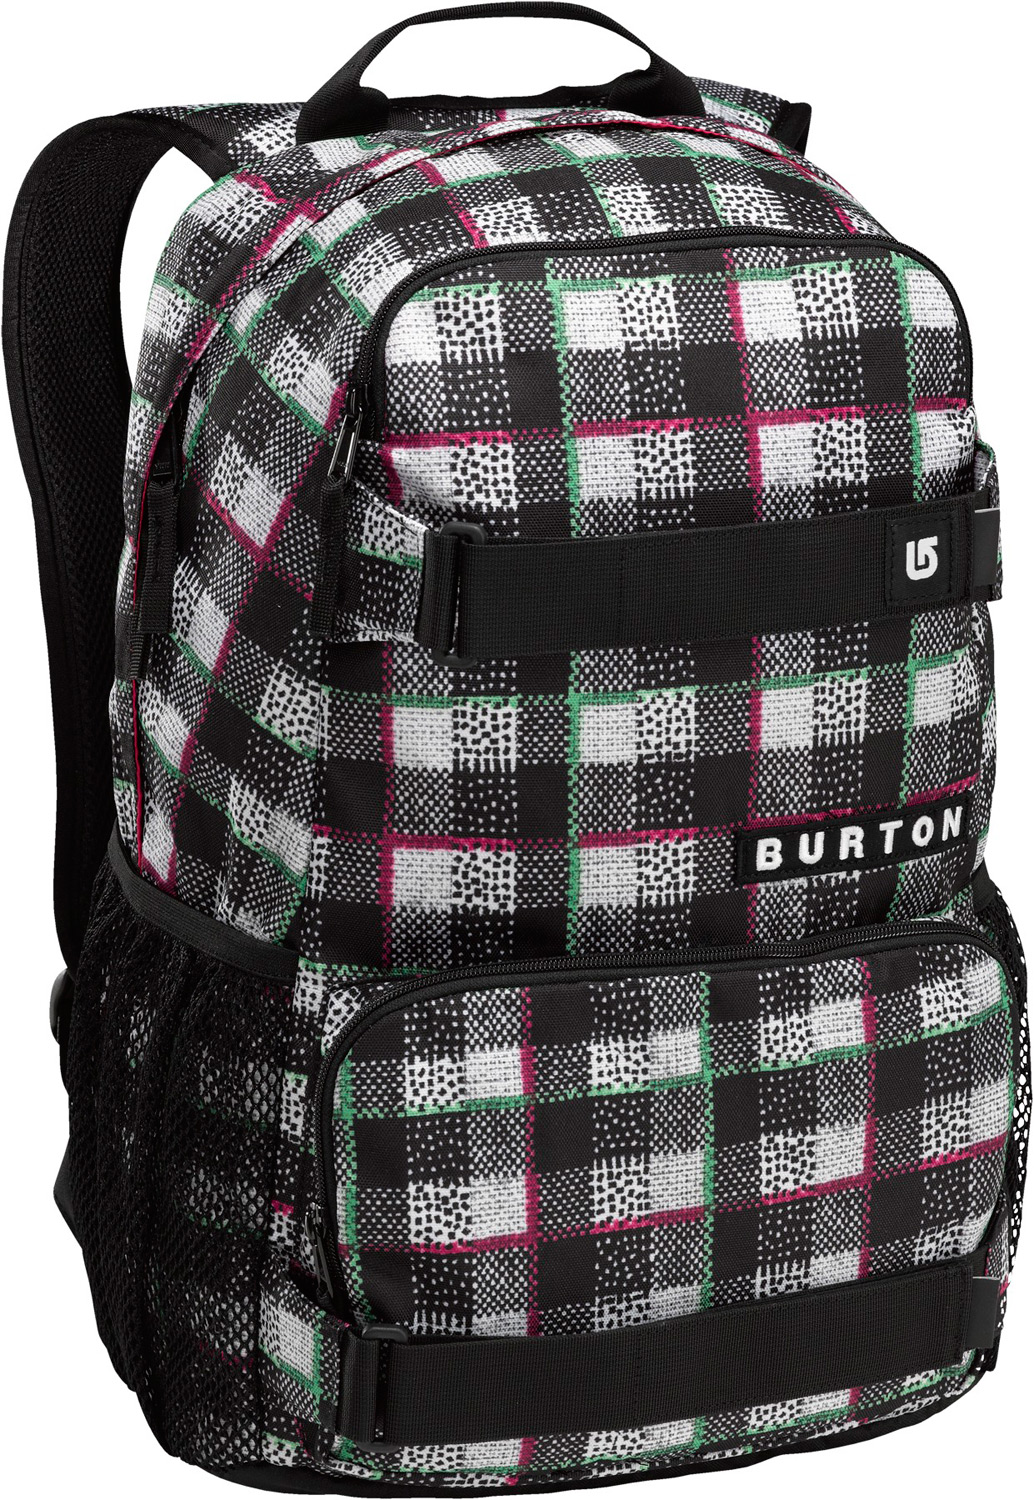 Snowboard Skate pack with 1,000 uses—the best deal going. External straps for a deck or other bulky gear, mesh water bottle pockets on the side for easy access to hydration and other necessities. Make every mission count with the Burton Treble Yell Backpack. It's got room for your laptop, shred mags, water, and supplies, plus nifty straps for your skateboard. Hot dang! Look at all those colorways! Nice price, too! It's hard to choose, so why not grab a few—one for school, one for work, one for road trips, another for skating, and one for your best friend's cousin. Key Features of the Burton Treble Yell Backpack:  21L 18.5in x 12in x 7in 47cm x 31cm x 17cm 1.5 lbs. 0.7kg Fabrication: 300D Yarn-Dyed Polyester [Misty Tidal Plaid] Fabrication: Polyspun Grograin [Phoenix Stripe] Fabrication: 600D and 450D Polyester [All Other Colorways] Vertical Skate Carry Magazine / Laptop Sleeve Cush Ergonomic Shoulder Harness Mesh Water Bottle Pockets - $25.95